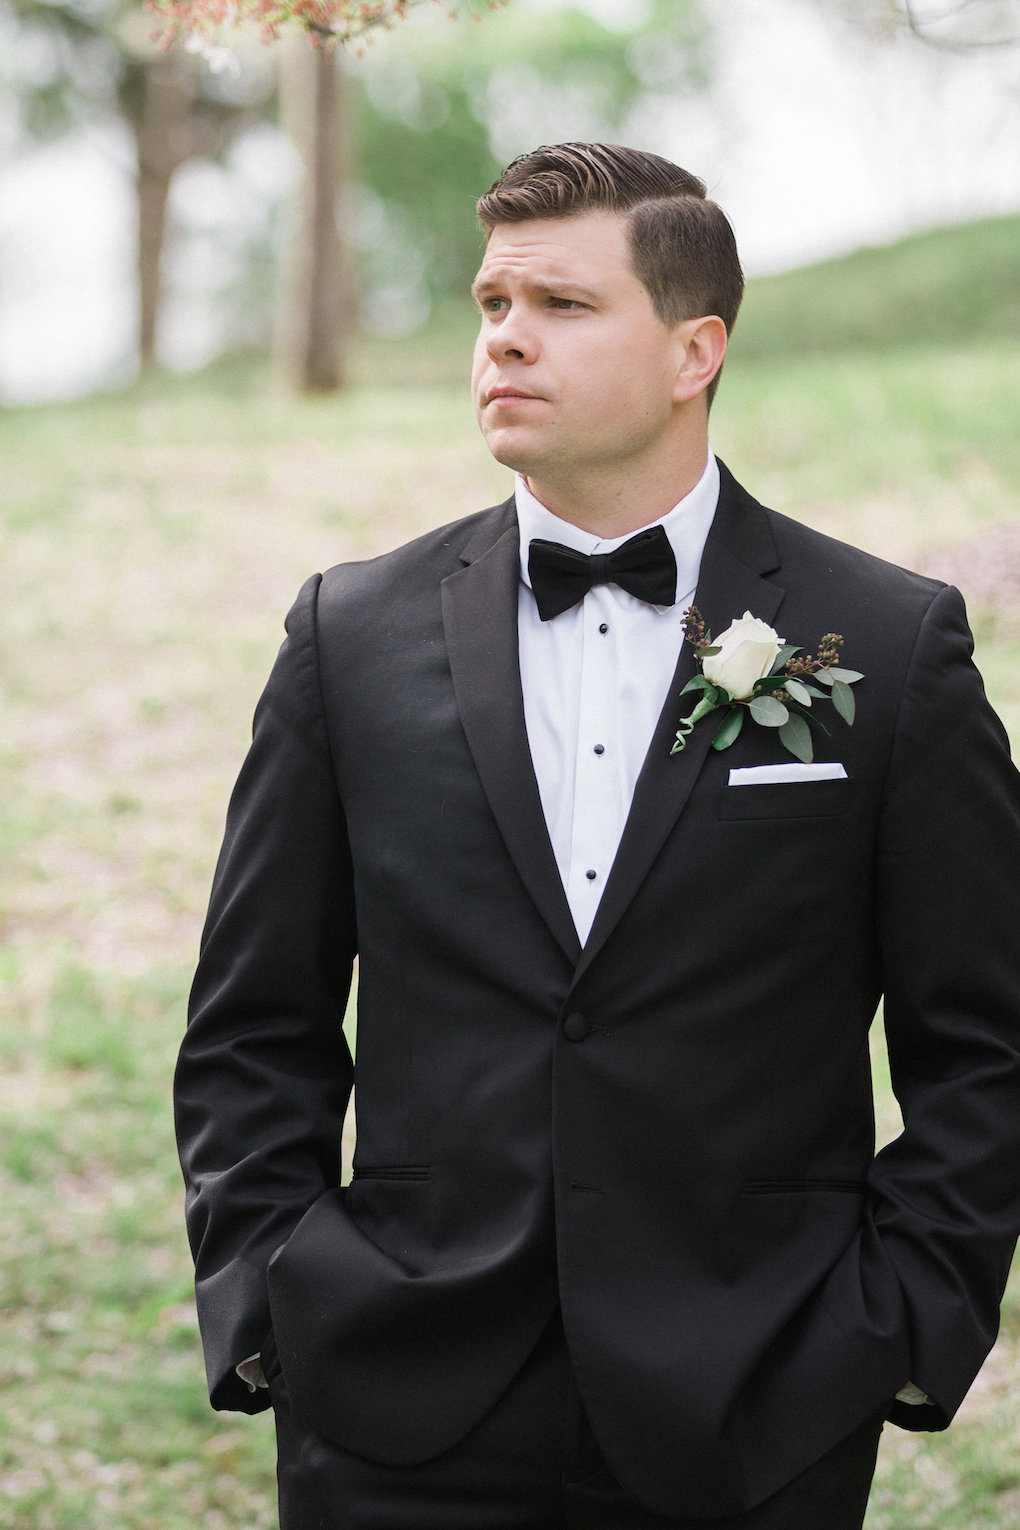 Grooms portrait for chic wedding in Buffalo, NY planned by Exhale Events. Find more timeless wedding inspiration at exhale-events.com!